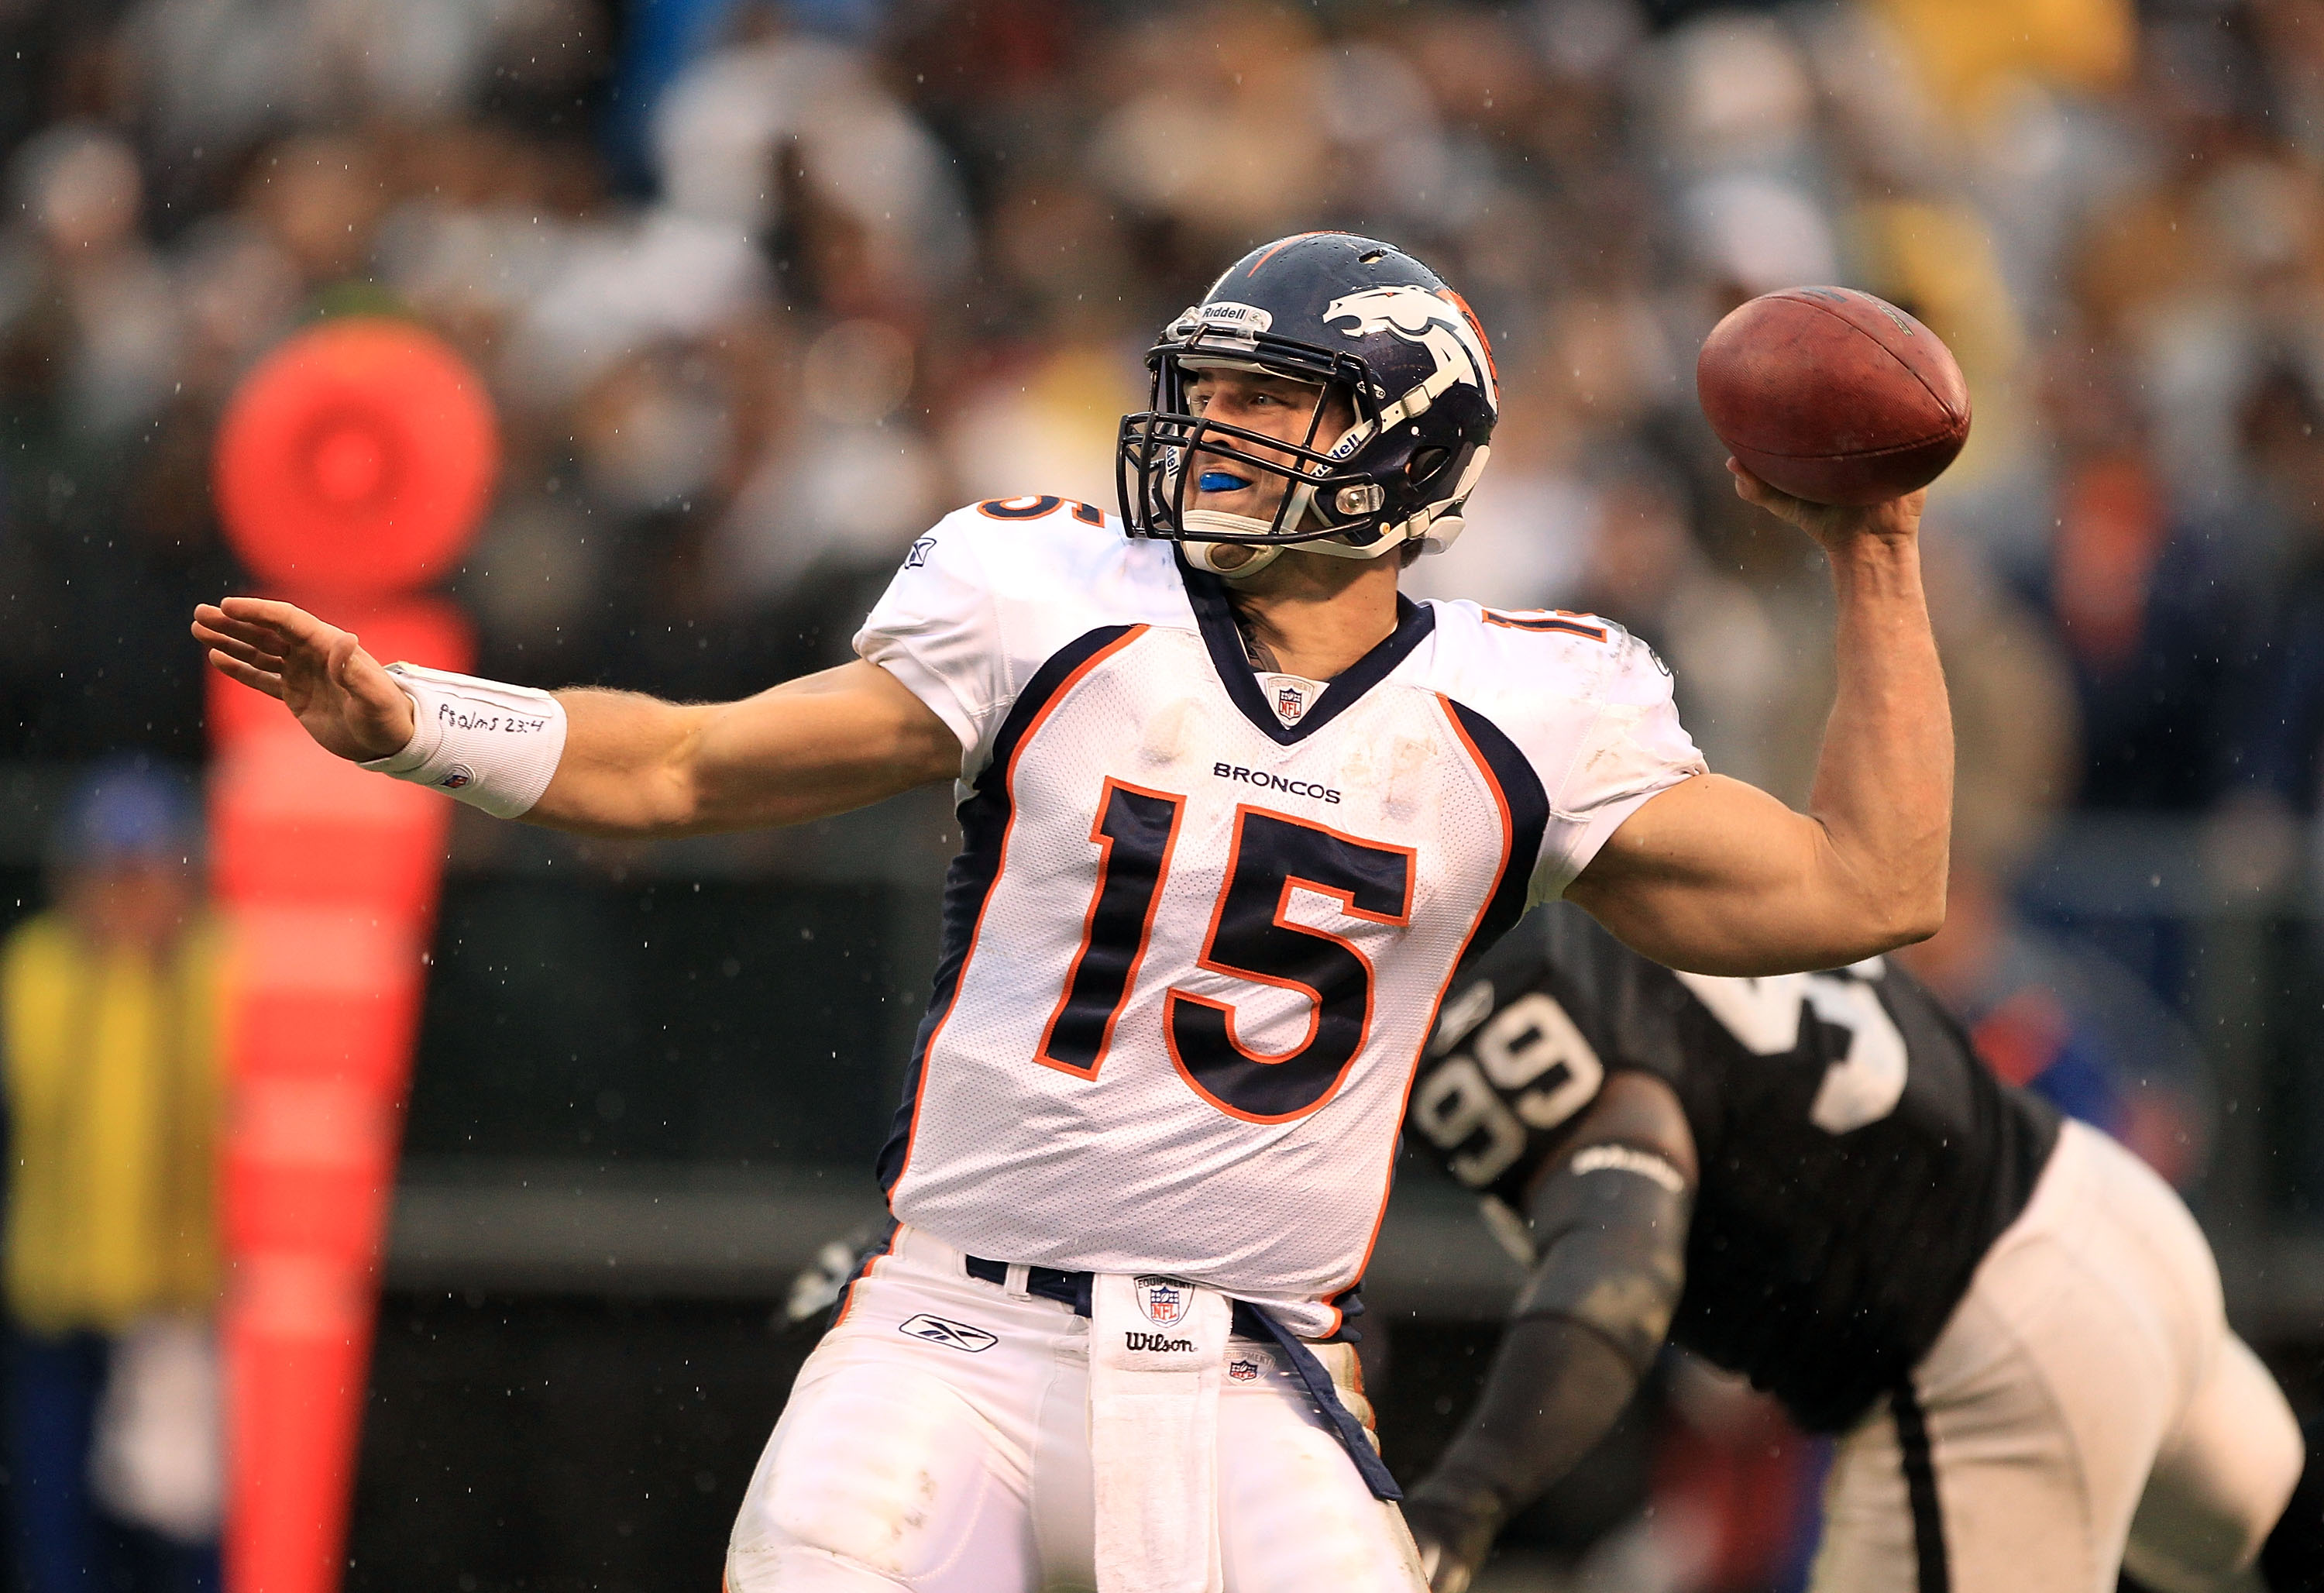 OAKLAND, CA - DECEMBER 19:  Tim Tebow #15 of the Denver Broncos throws the ball during their game against the Oakland Raiders at Oakland-Alameda County Coliseum on December 19, 2010 in Oakland, California.  (Photo by Ezra Shaw/Getty Images)